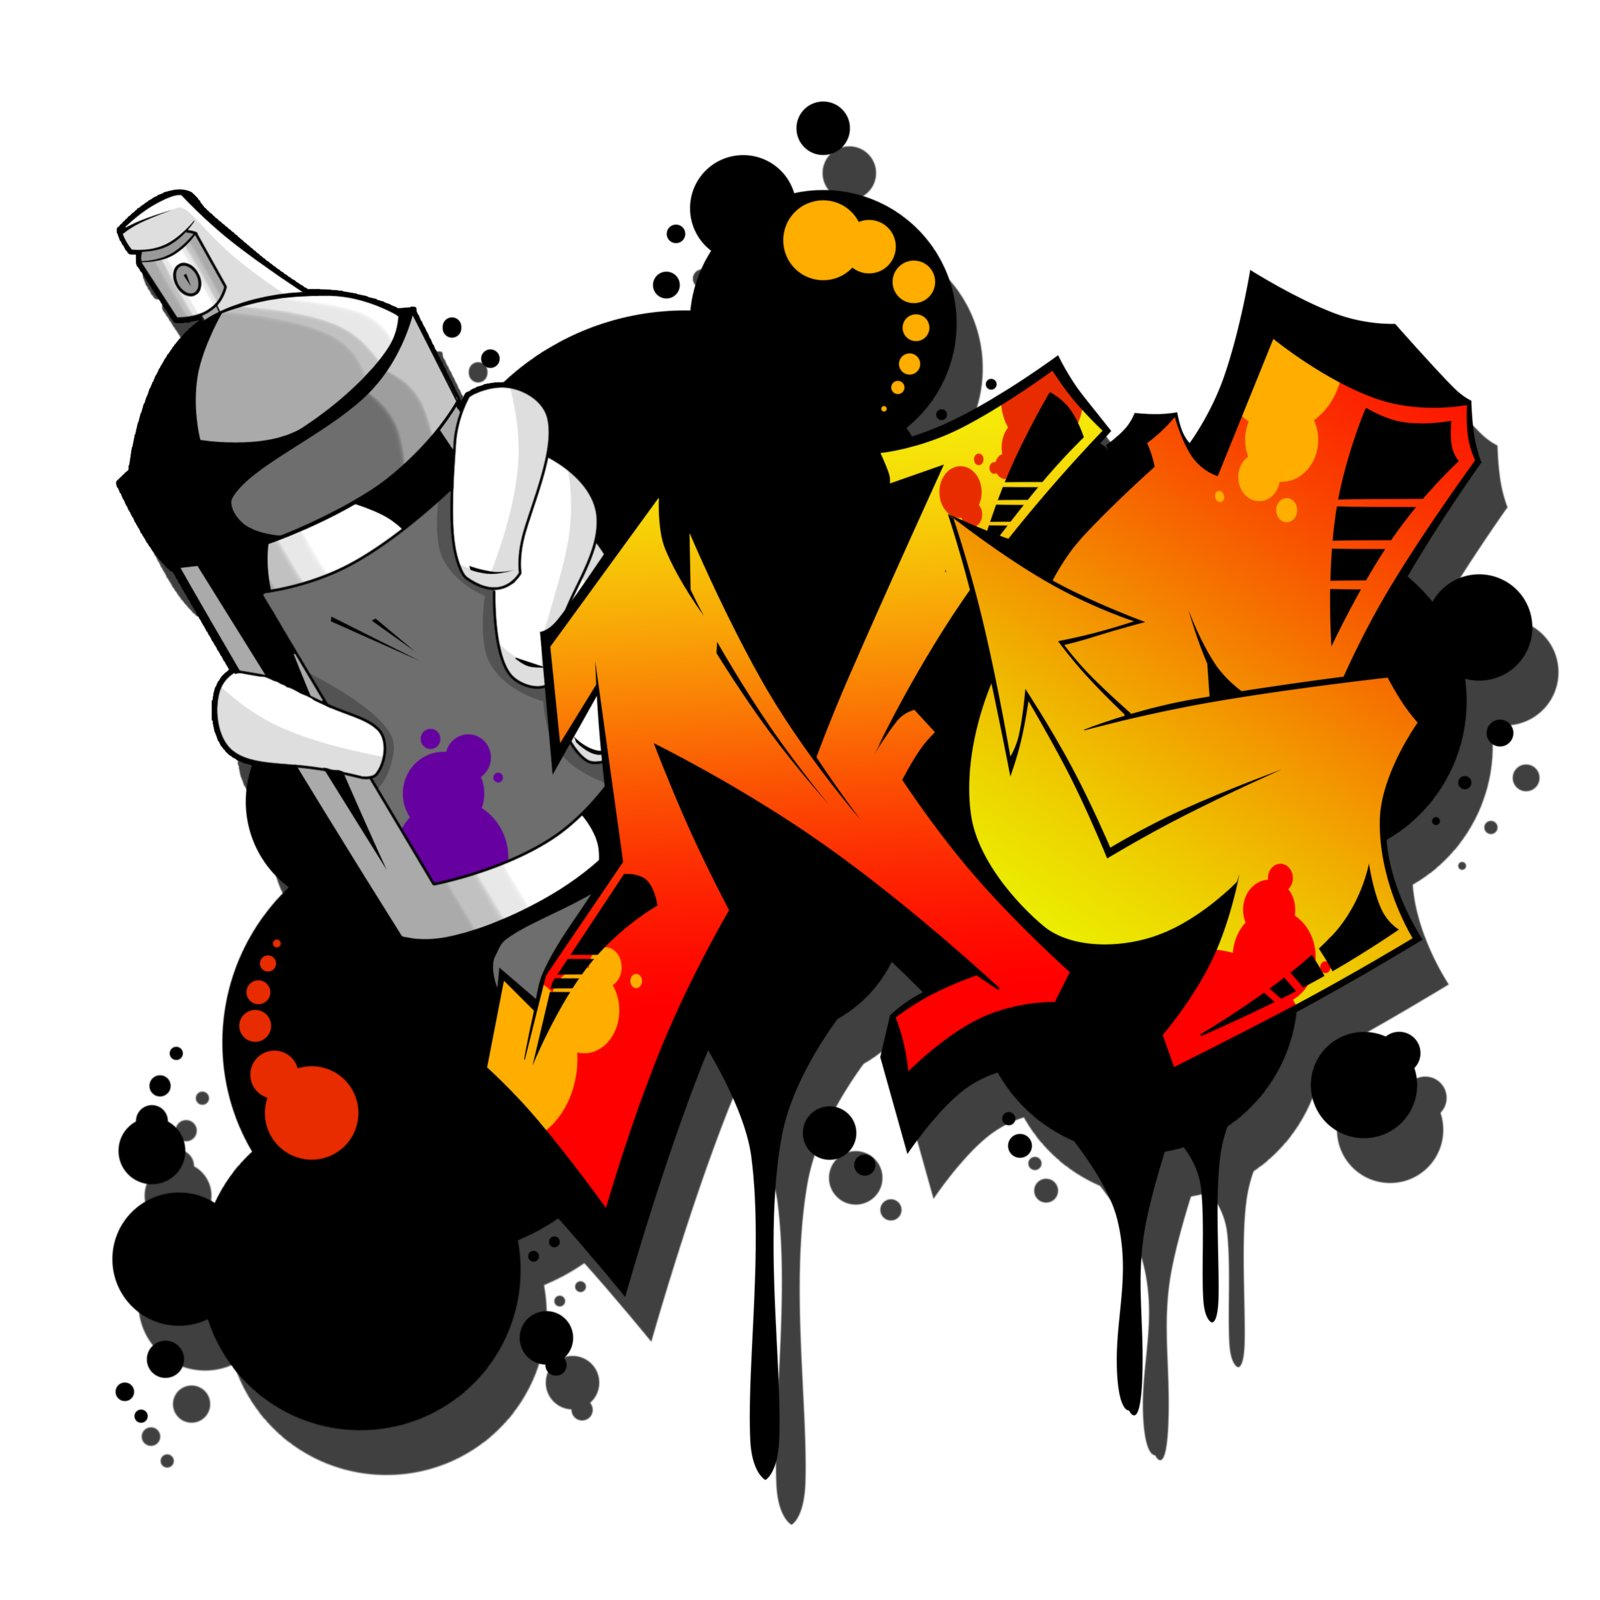 Alternate logo to the Notorious Graffiti clothing line. Something a little more complex and loud.